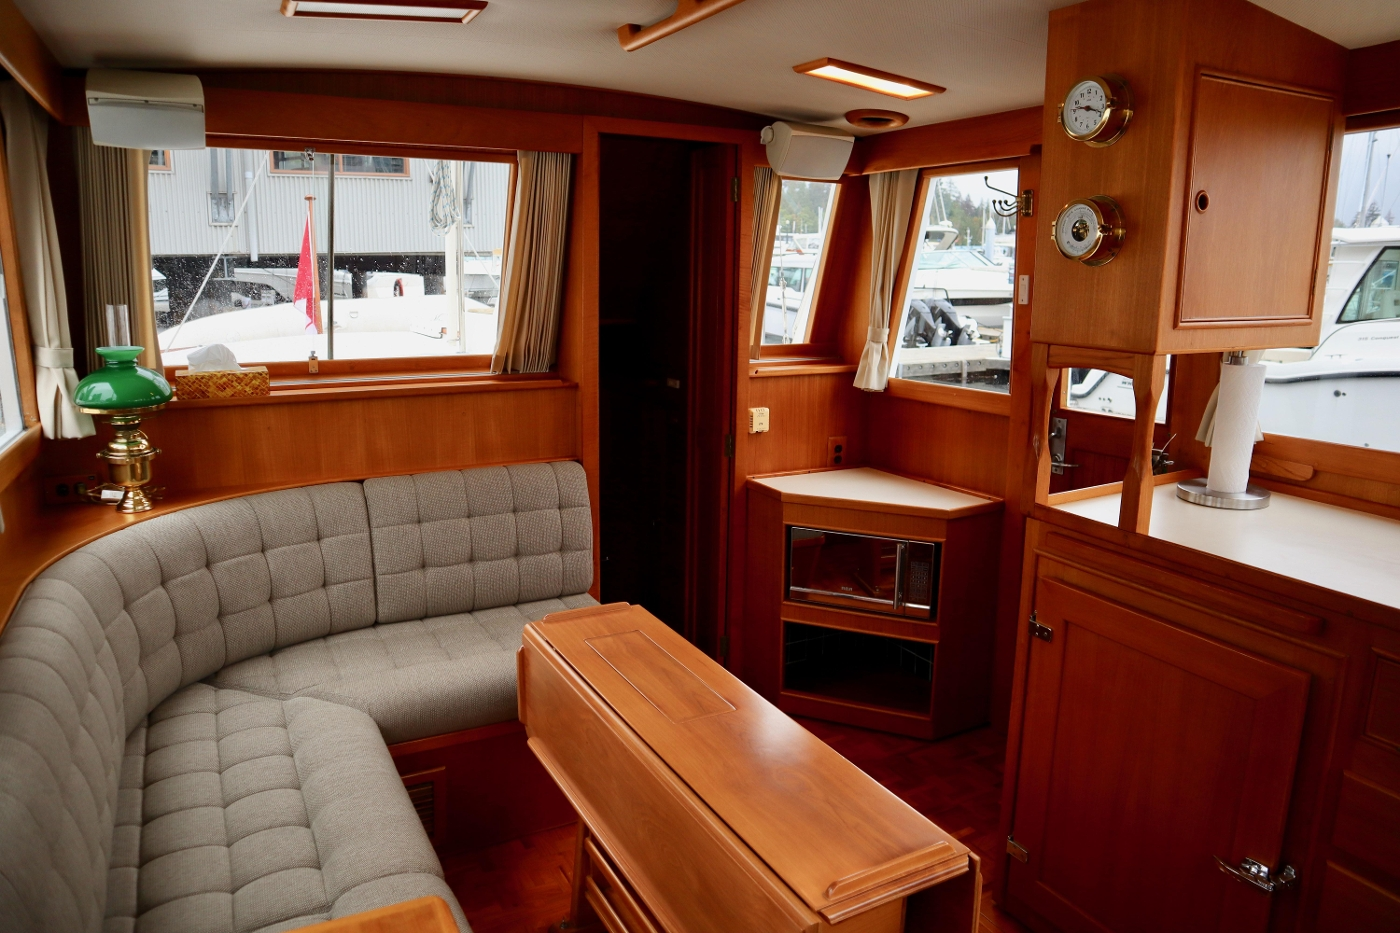 1995 Grand Banks 36 Classic, Salon Looking Aft